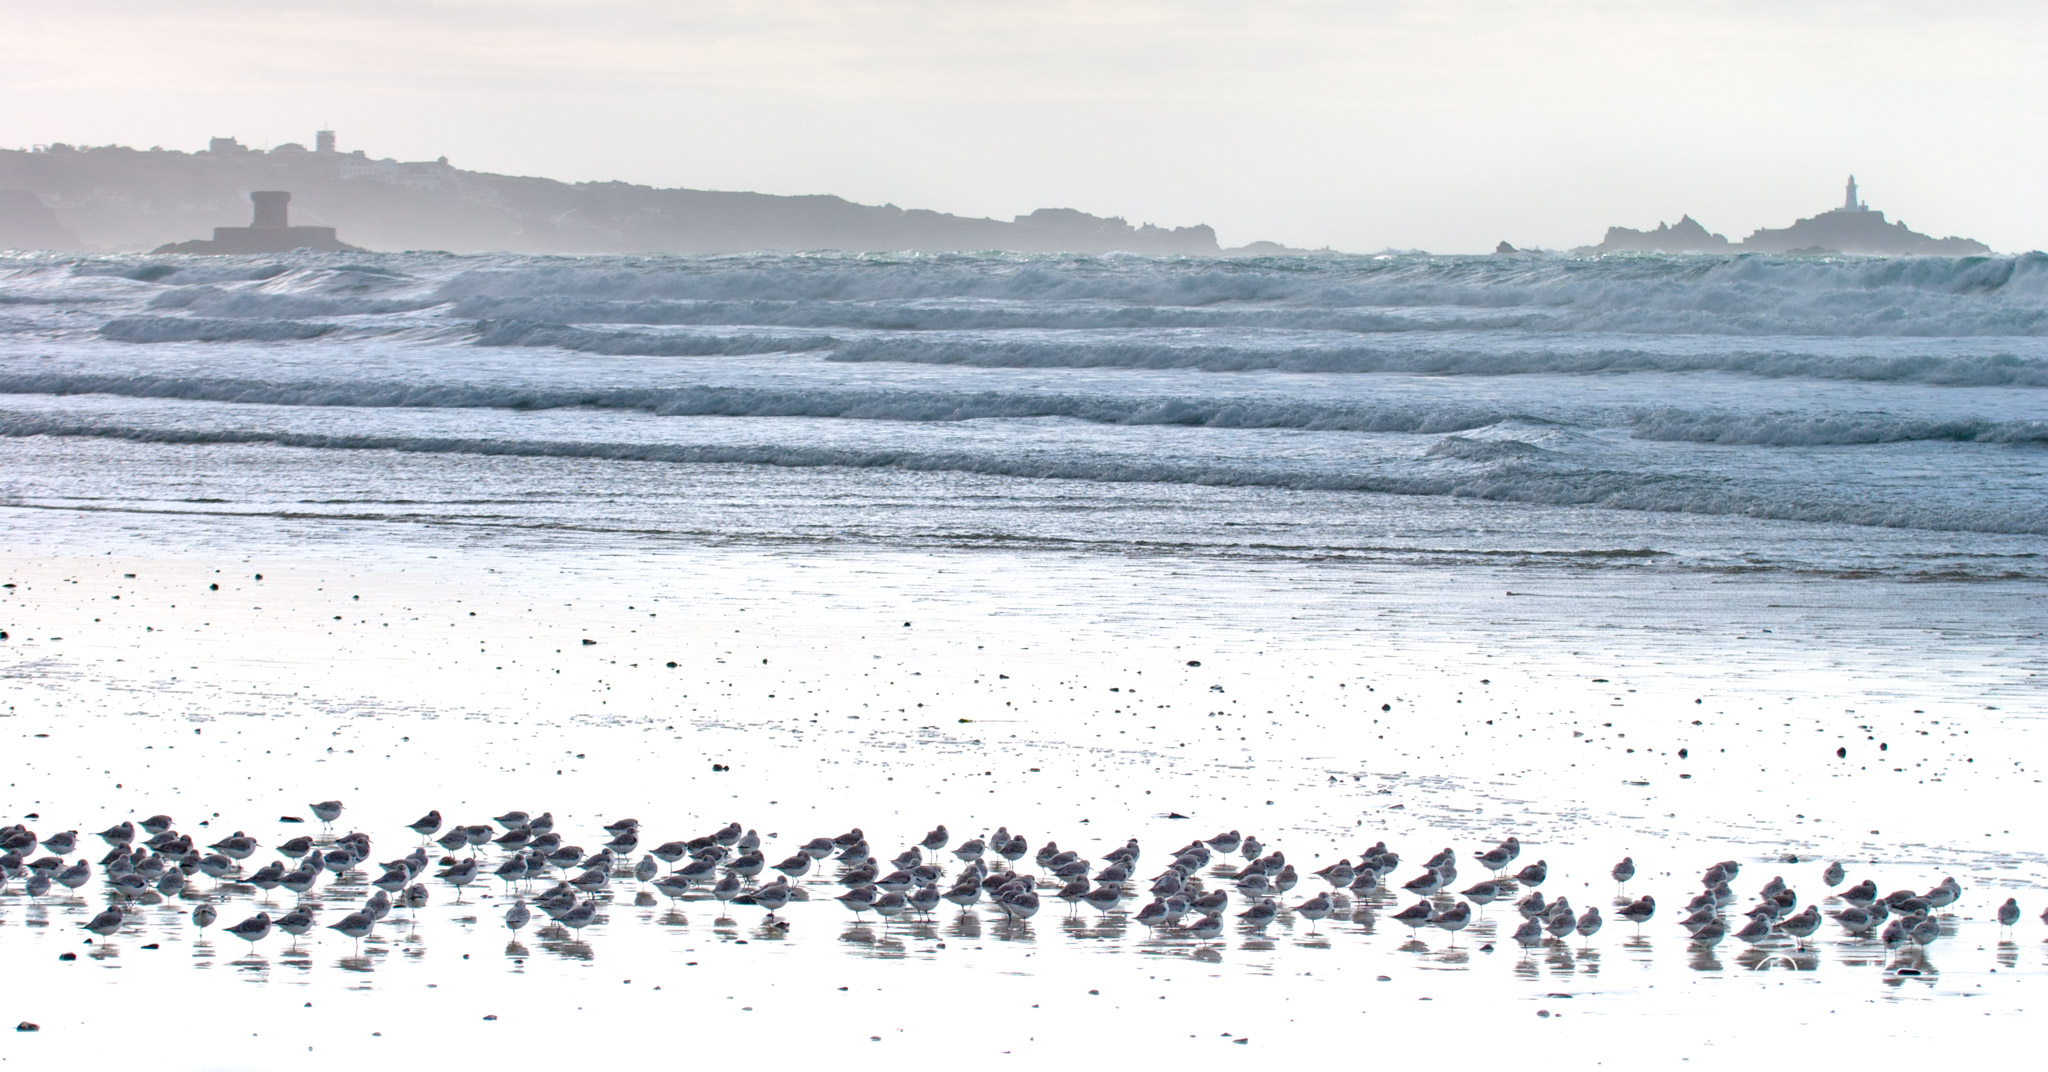 Beach and lively breaking waves with birds in the foreground and lighthouse on the horizon